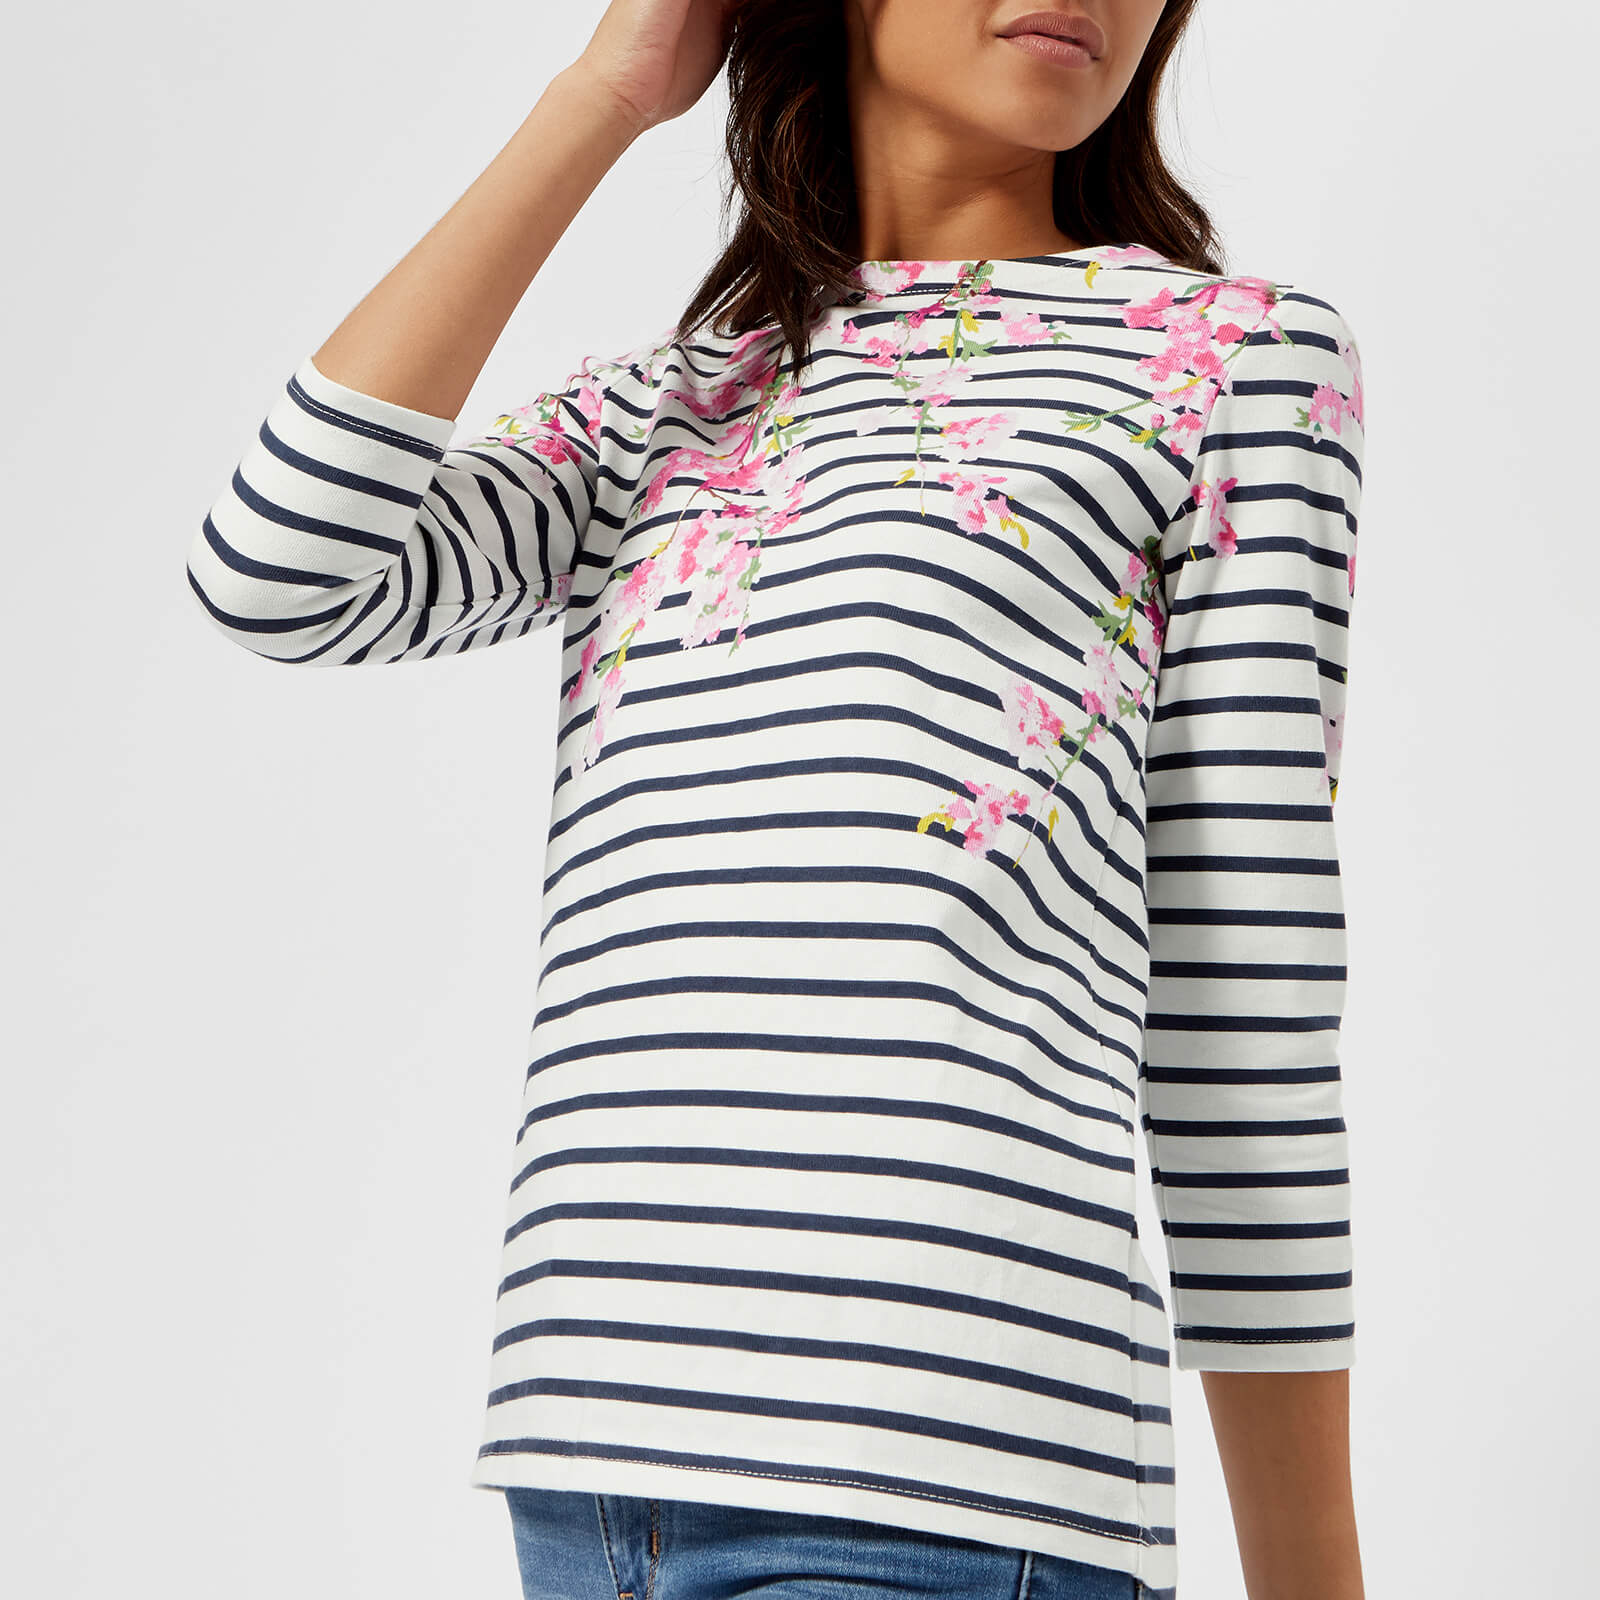 Joules Women Harbour Printed   Jersey Top Shirt in  Size 6